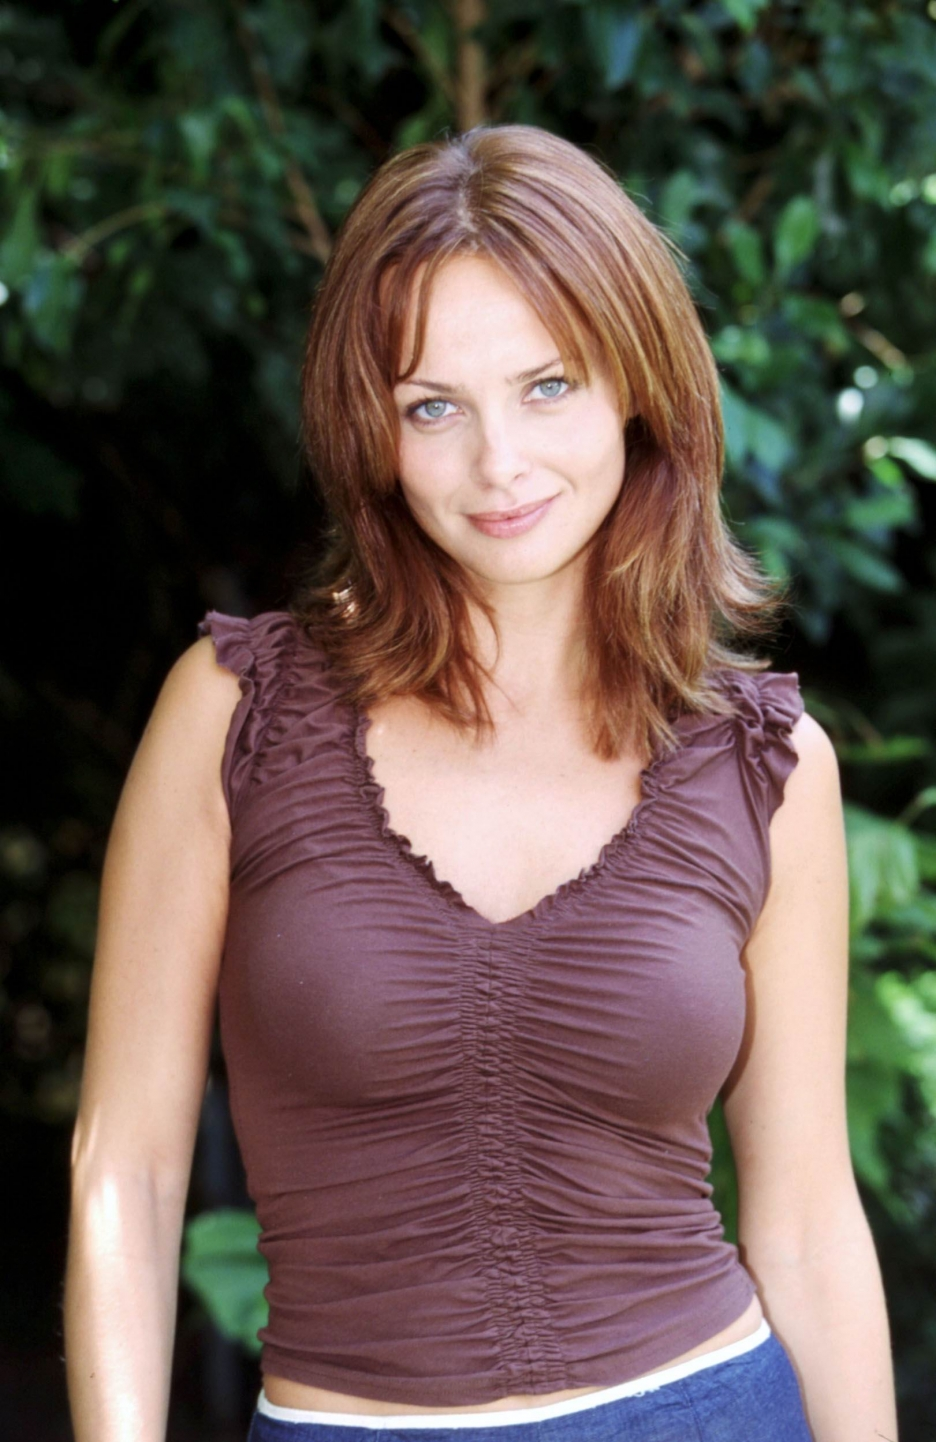 Images Izabella Scorupco naked (45 foto and video), Ass, Sideboobs, Feet, cleavage 2015